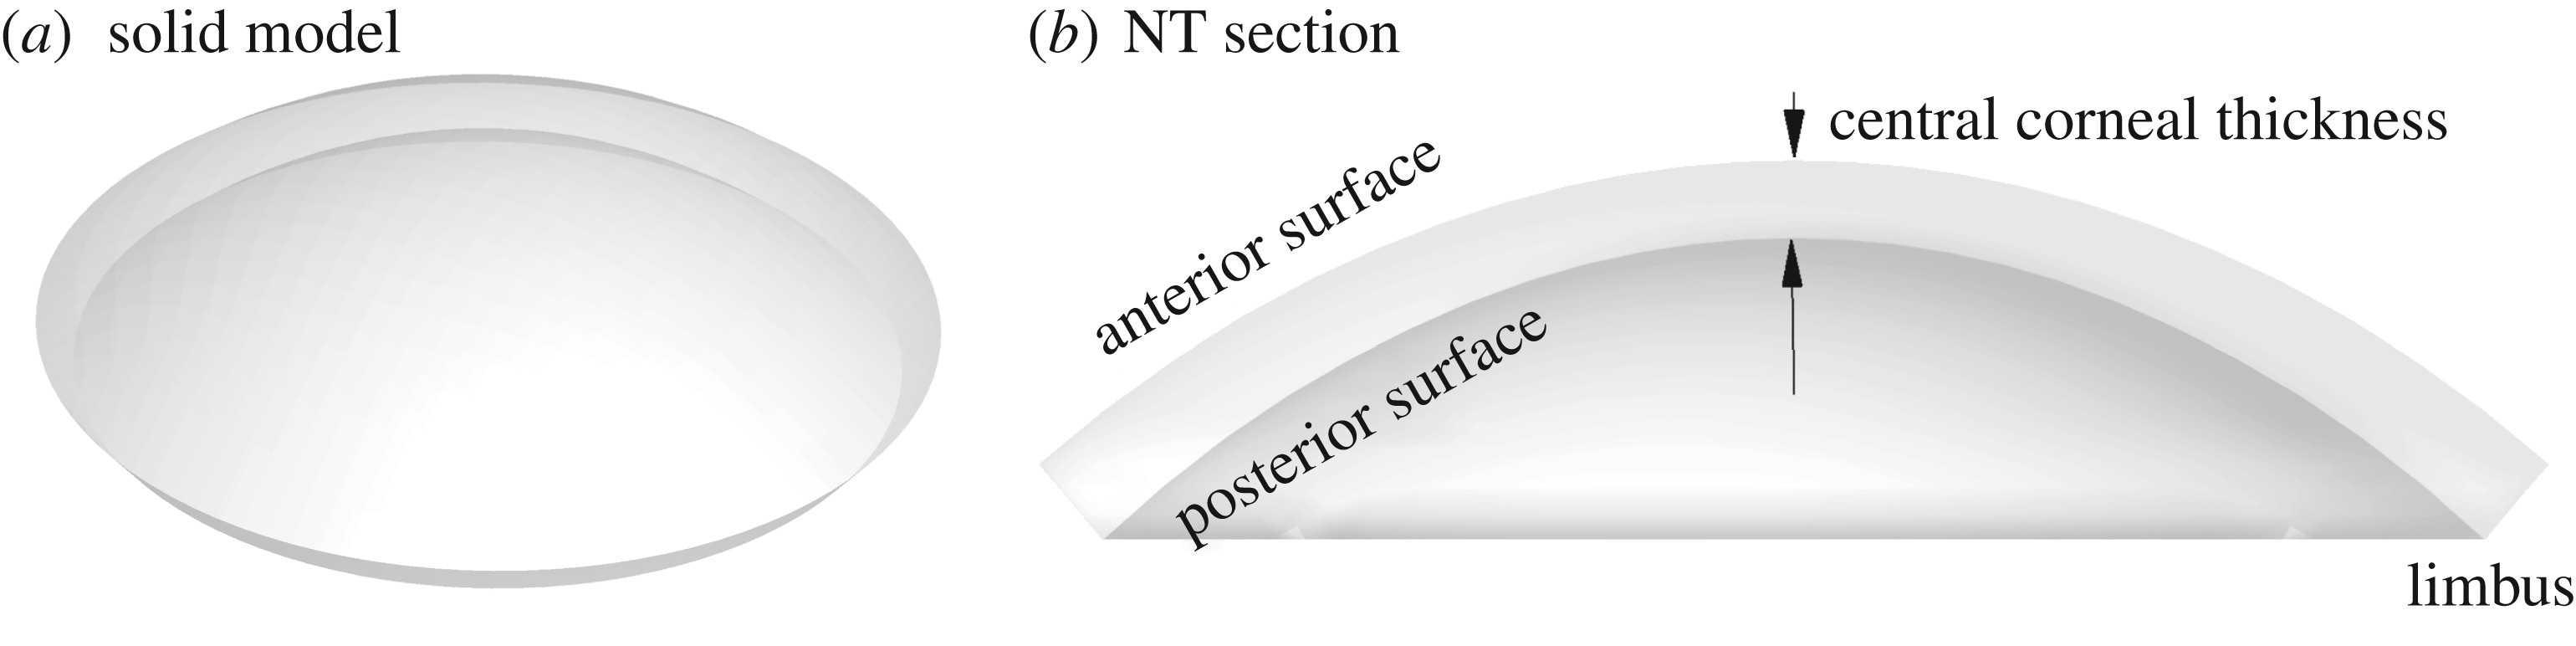 A microstructural model of cross-link interaction between